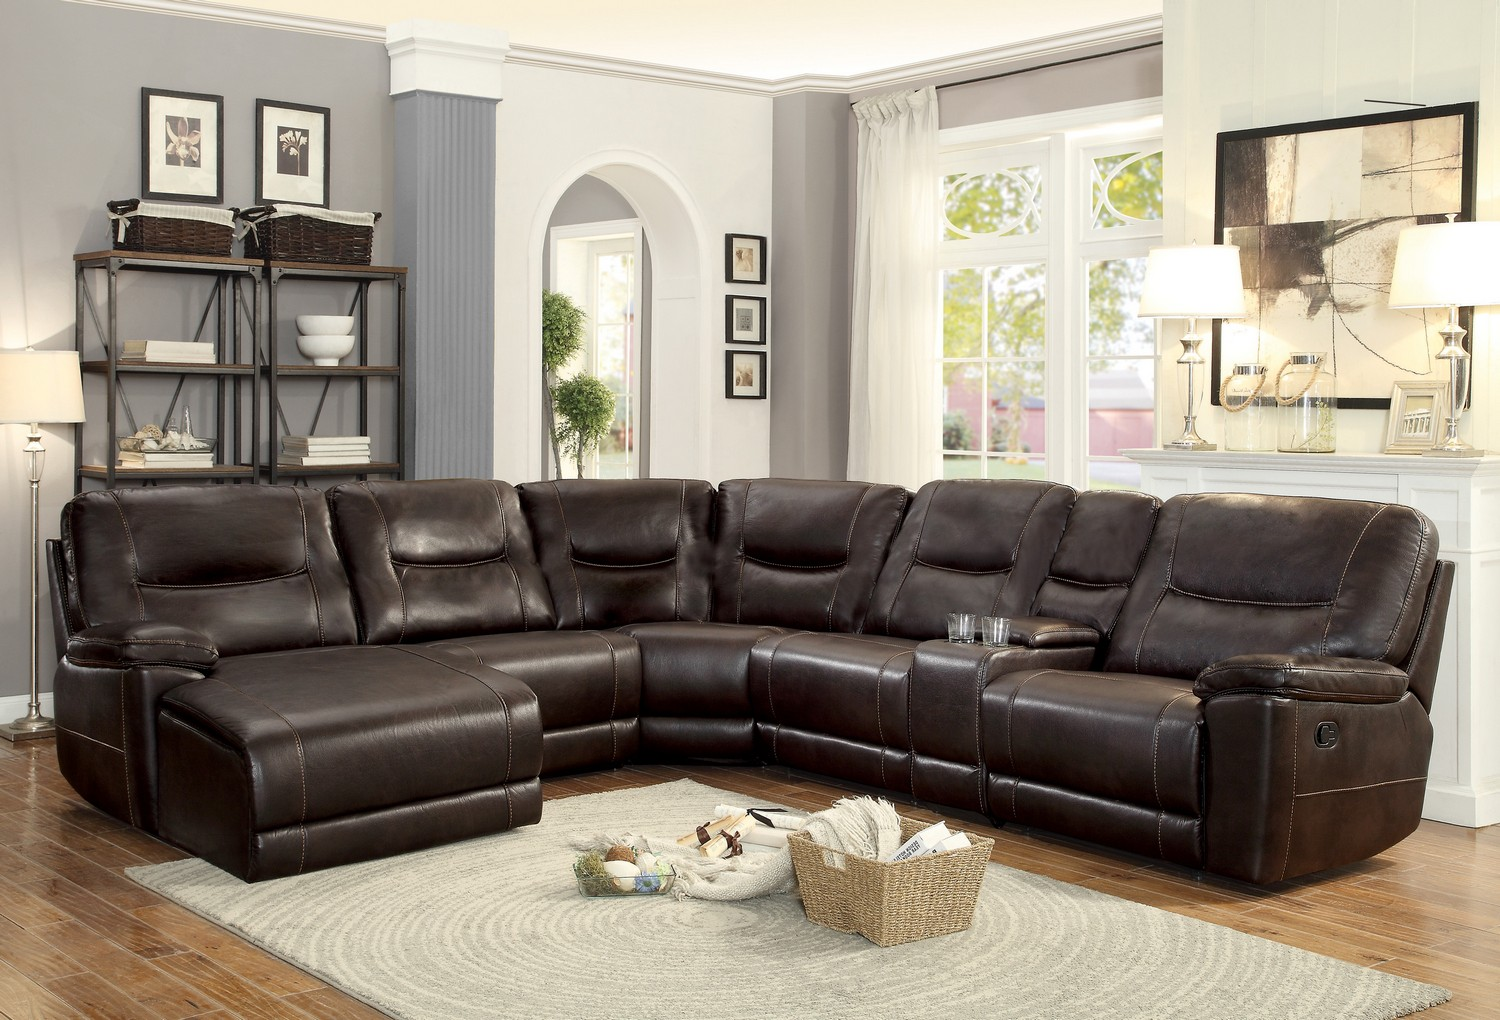 Faux Leather Reclining Living Room Set